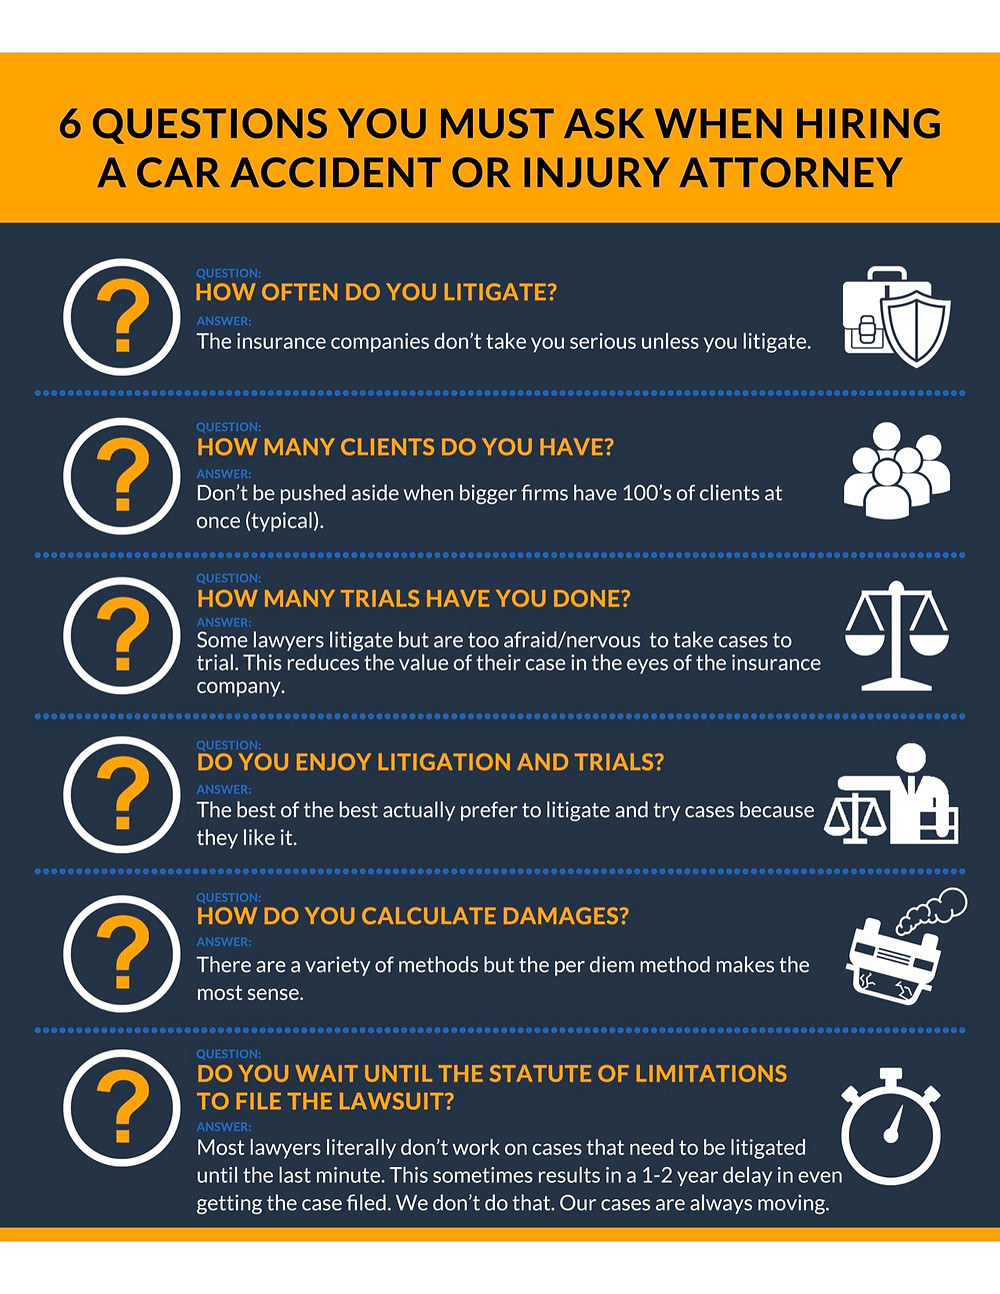 6_questions_you_must_ask_when_hiring_a_car_accident_or_injury_attorney